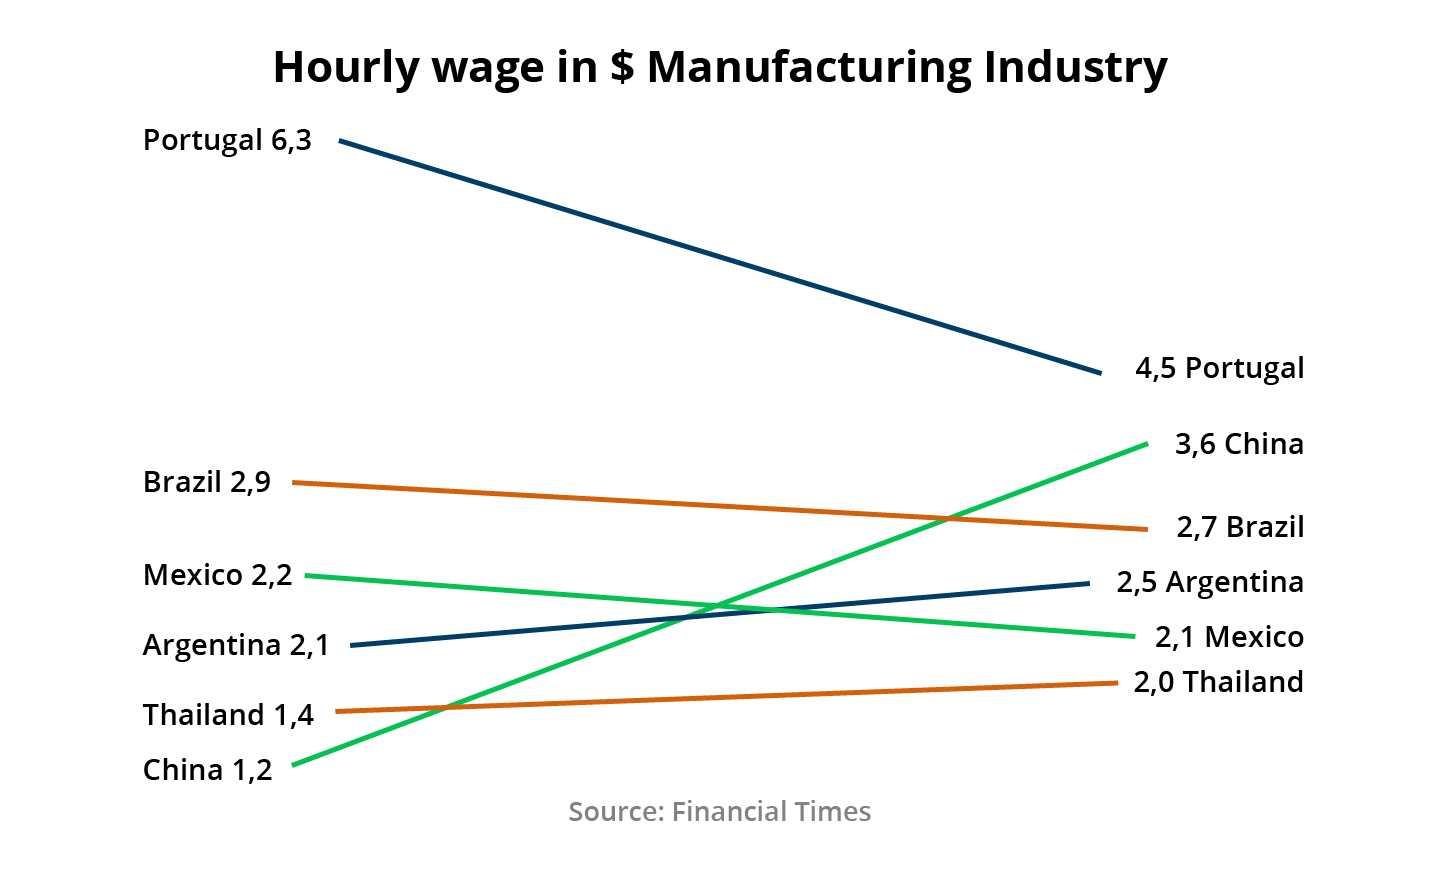 Figure 1: Hourly wages of the manufacturing industry